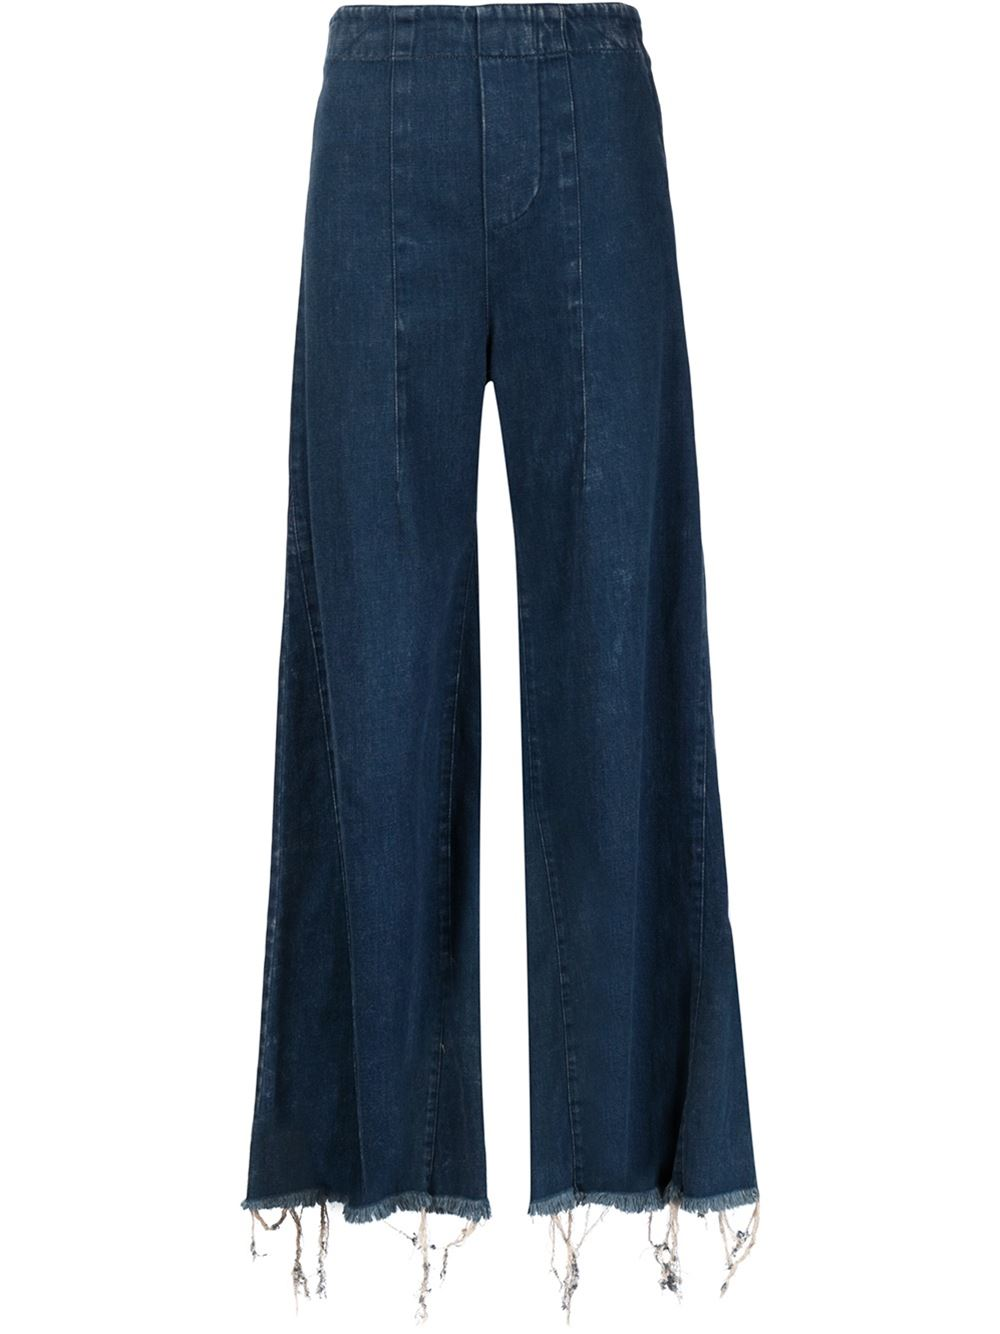 Chloe Washed Denim Flared Trouser